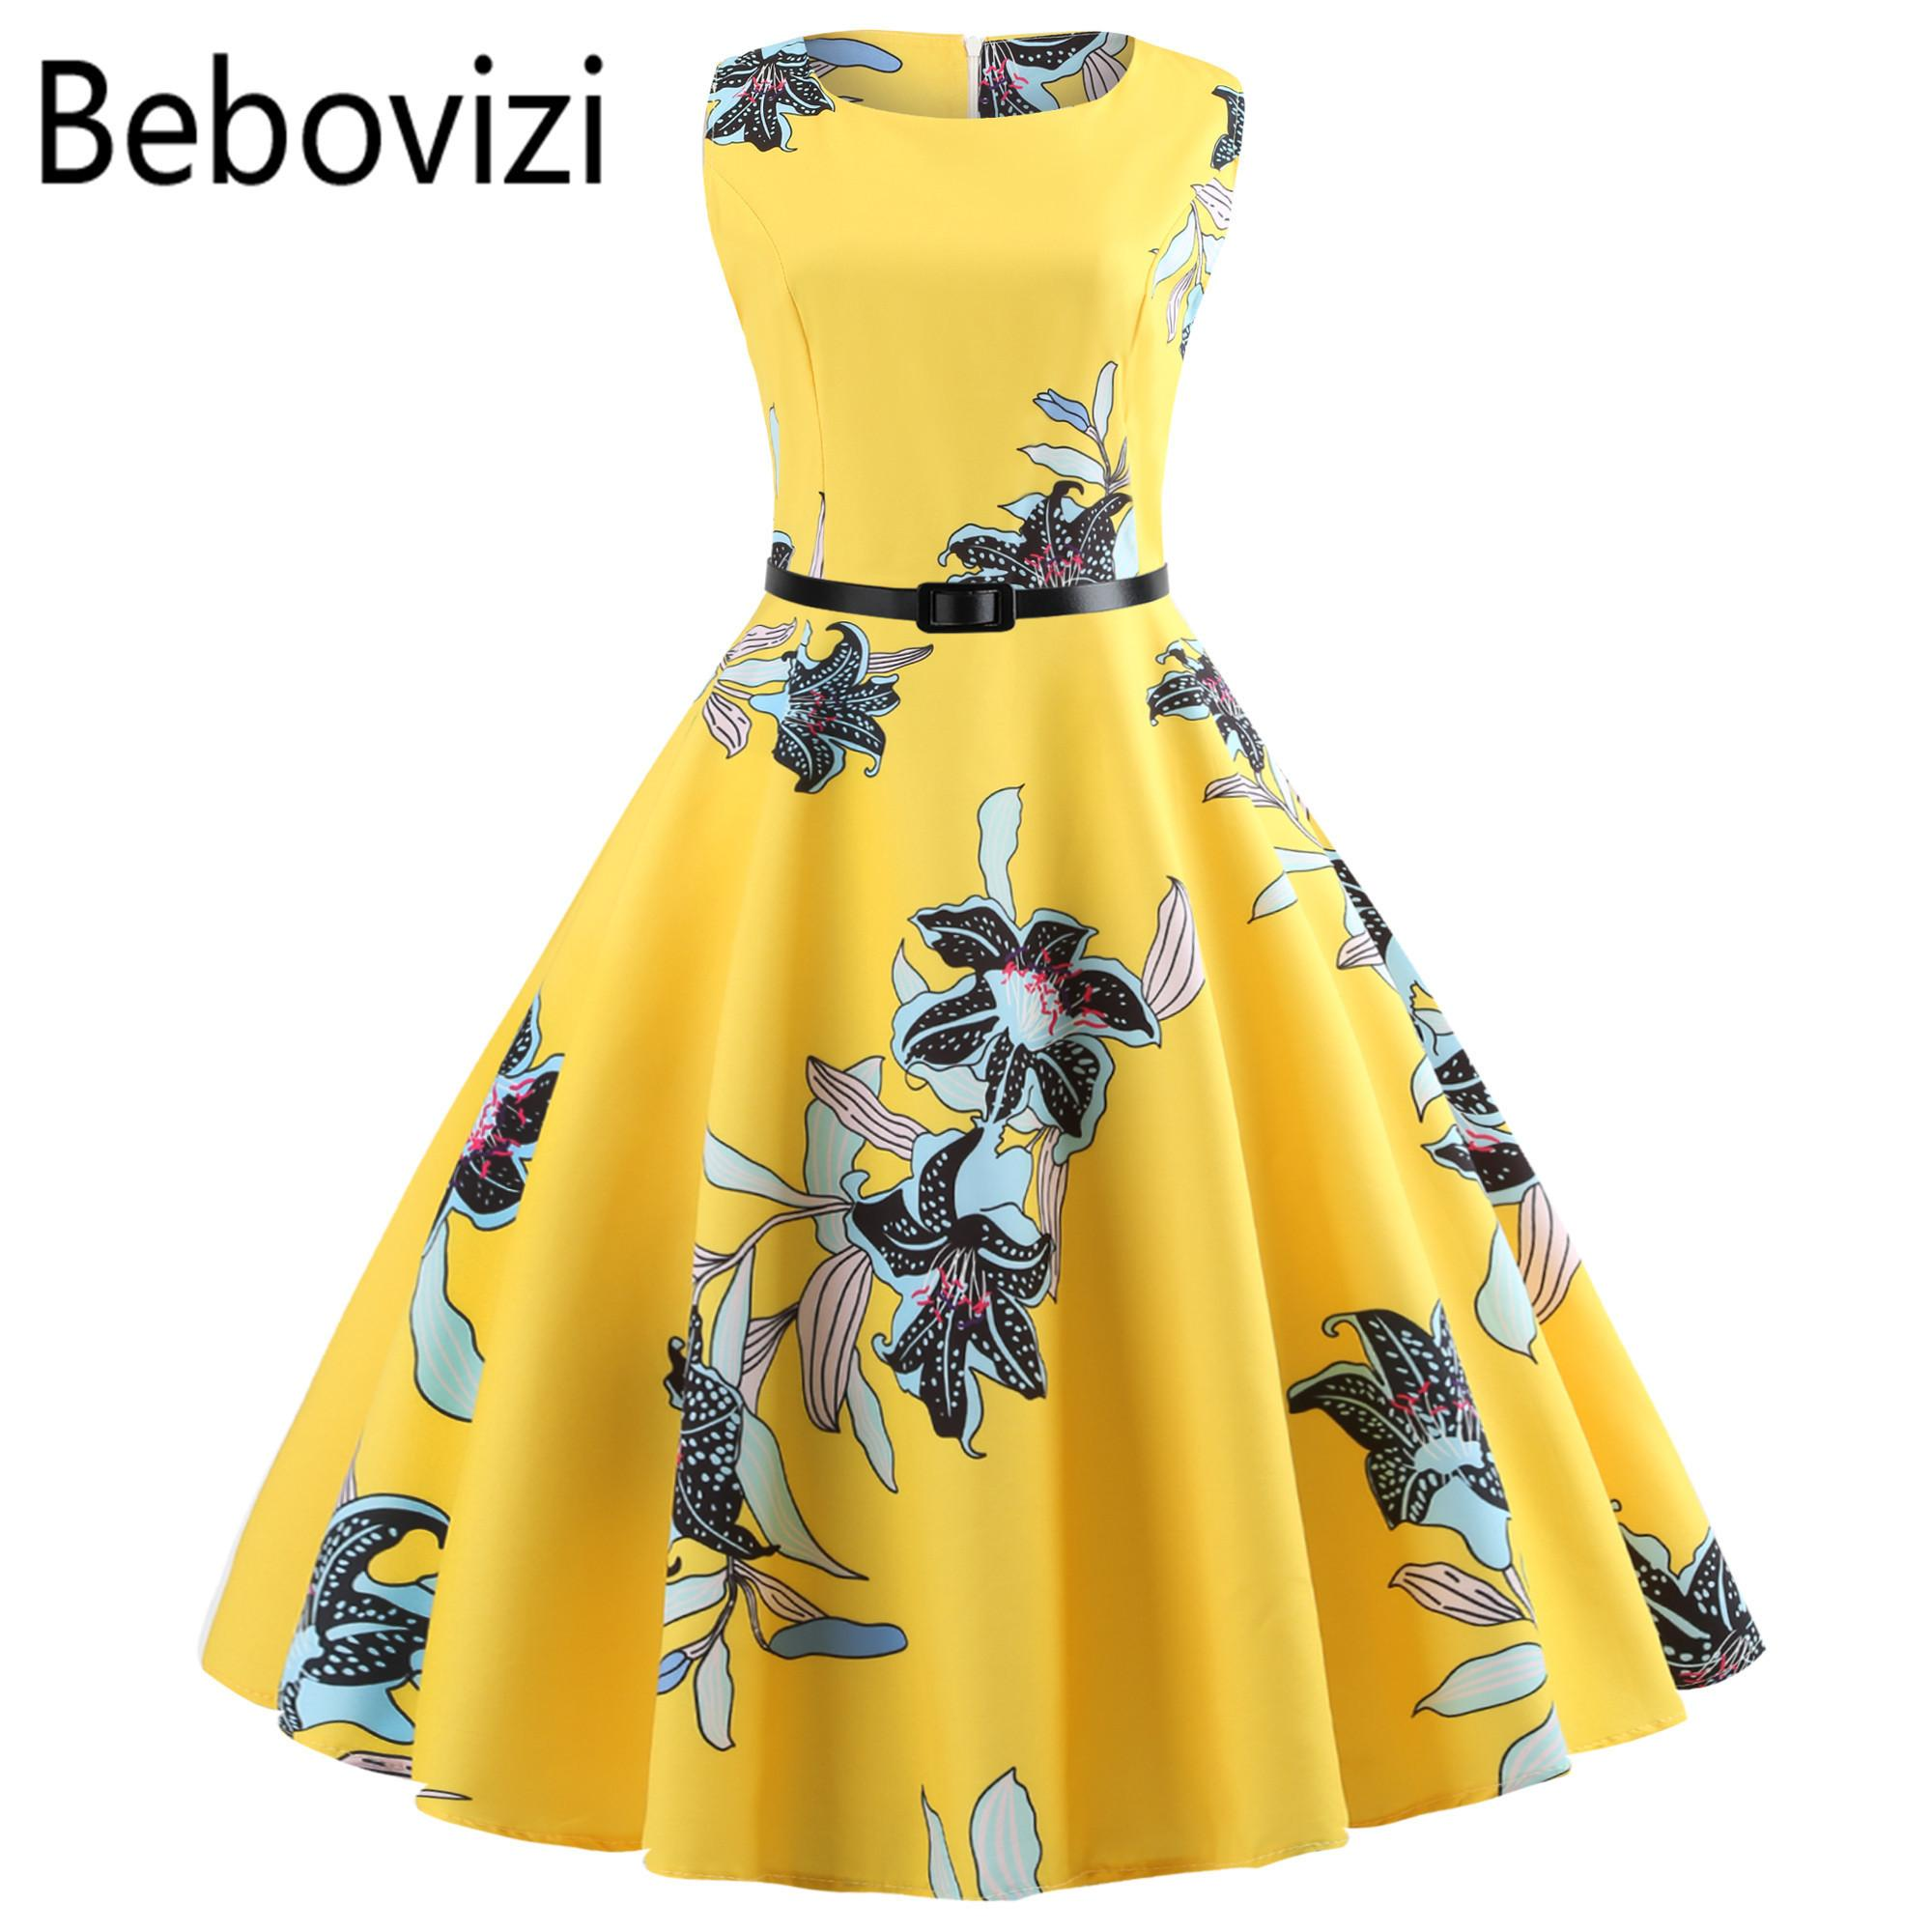 cb8e6d8b1020 2019 Yellow Women Dress New 2018 Casual Floral Elegant Retro Vintage 50s  60s Robe Femme Rockabilly Swing Pinup Vestidos Party Dresses Y19012201 From  ...